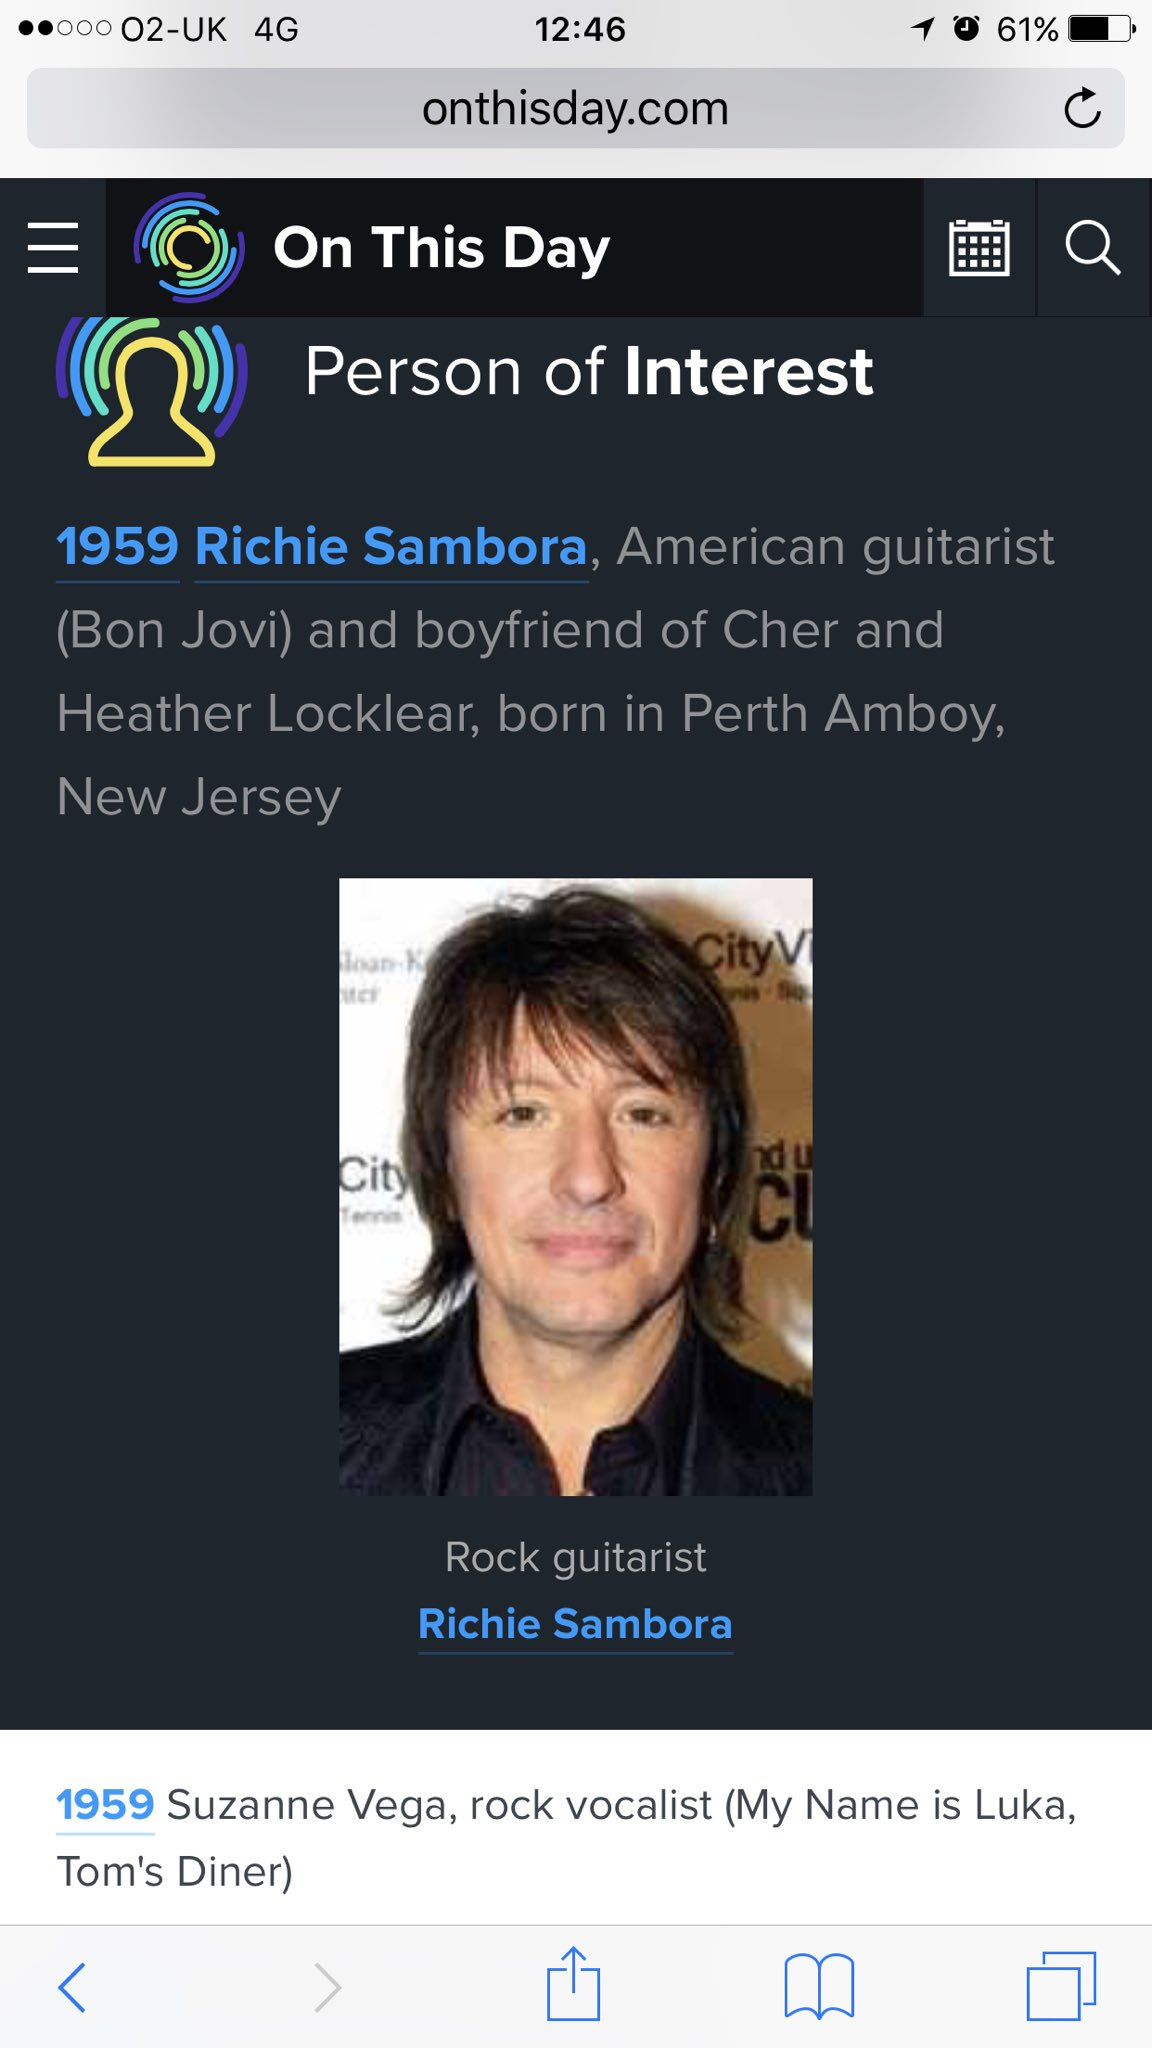 Happy 58th birthday to Richie Sambora and Suzanne Vega. Despite being a person of interest, this is a damning resumé